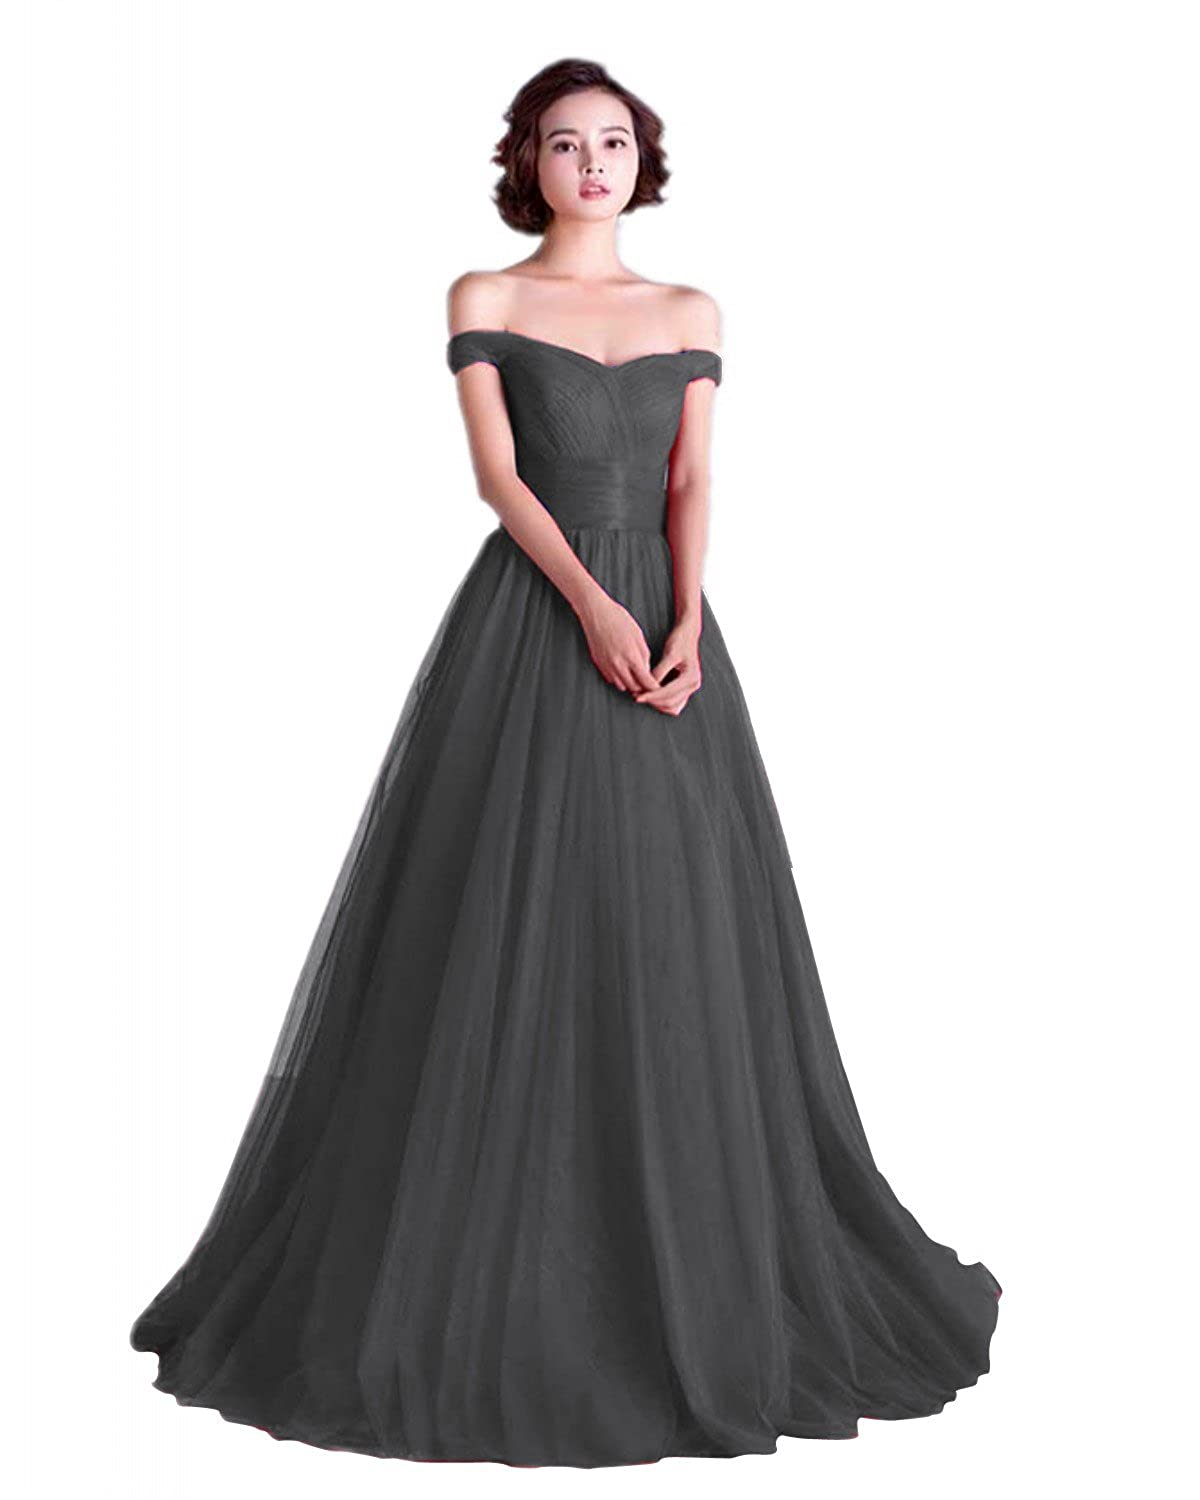 d8ced1ae6d24aa Top 10 wholesale Types Of Gown Dresses - Chinabrands.com